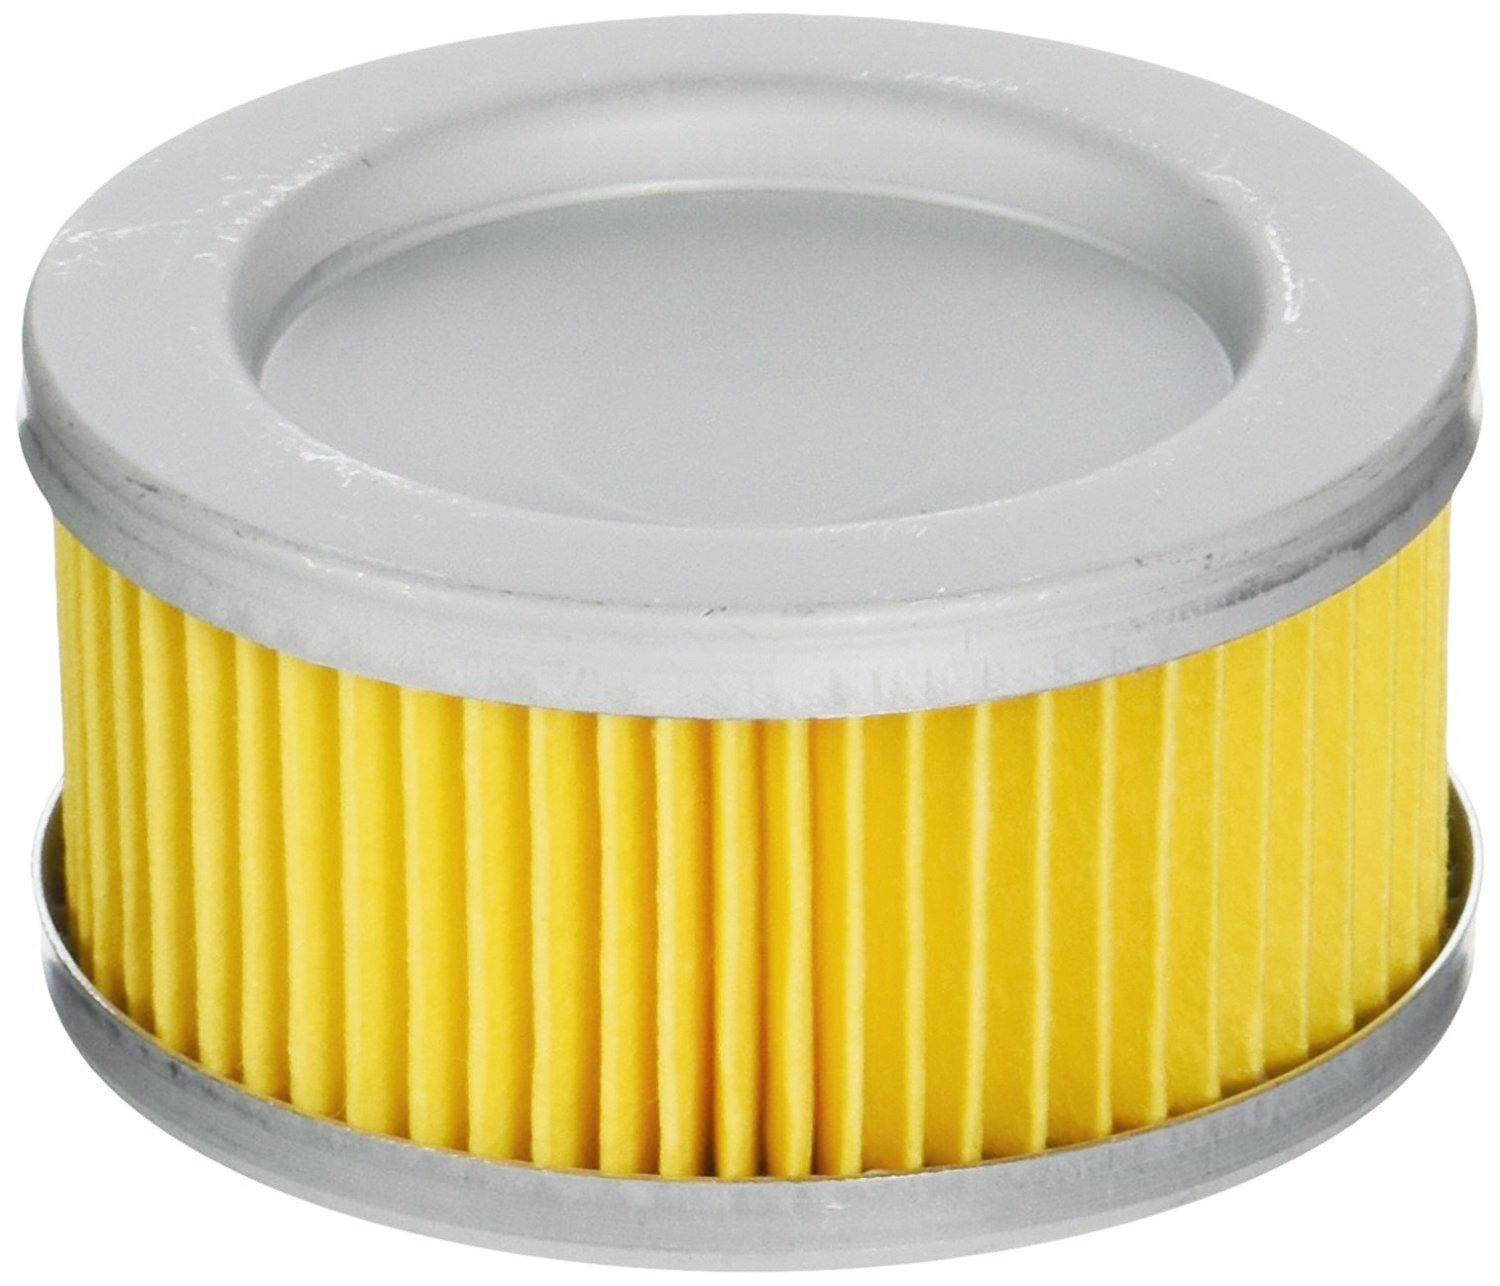 Air filter replaces 4203-141-0300 fits BR320 BR400 Blowers